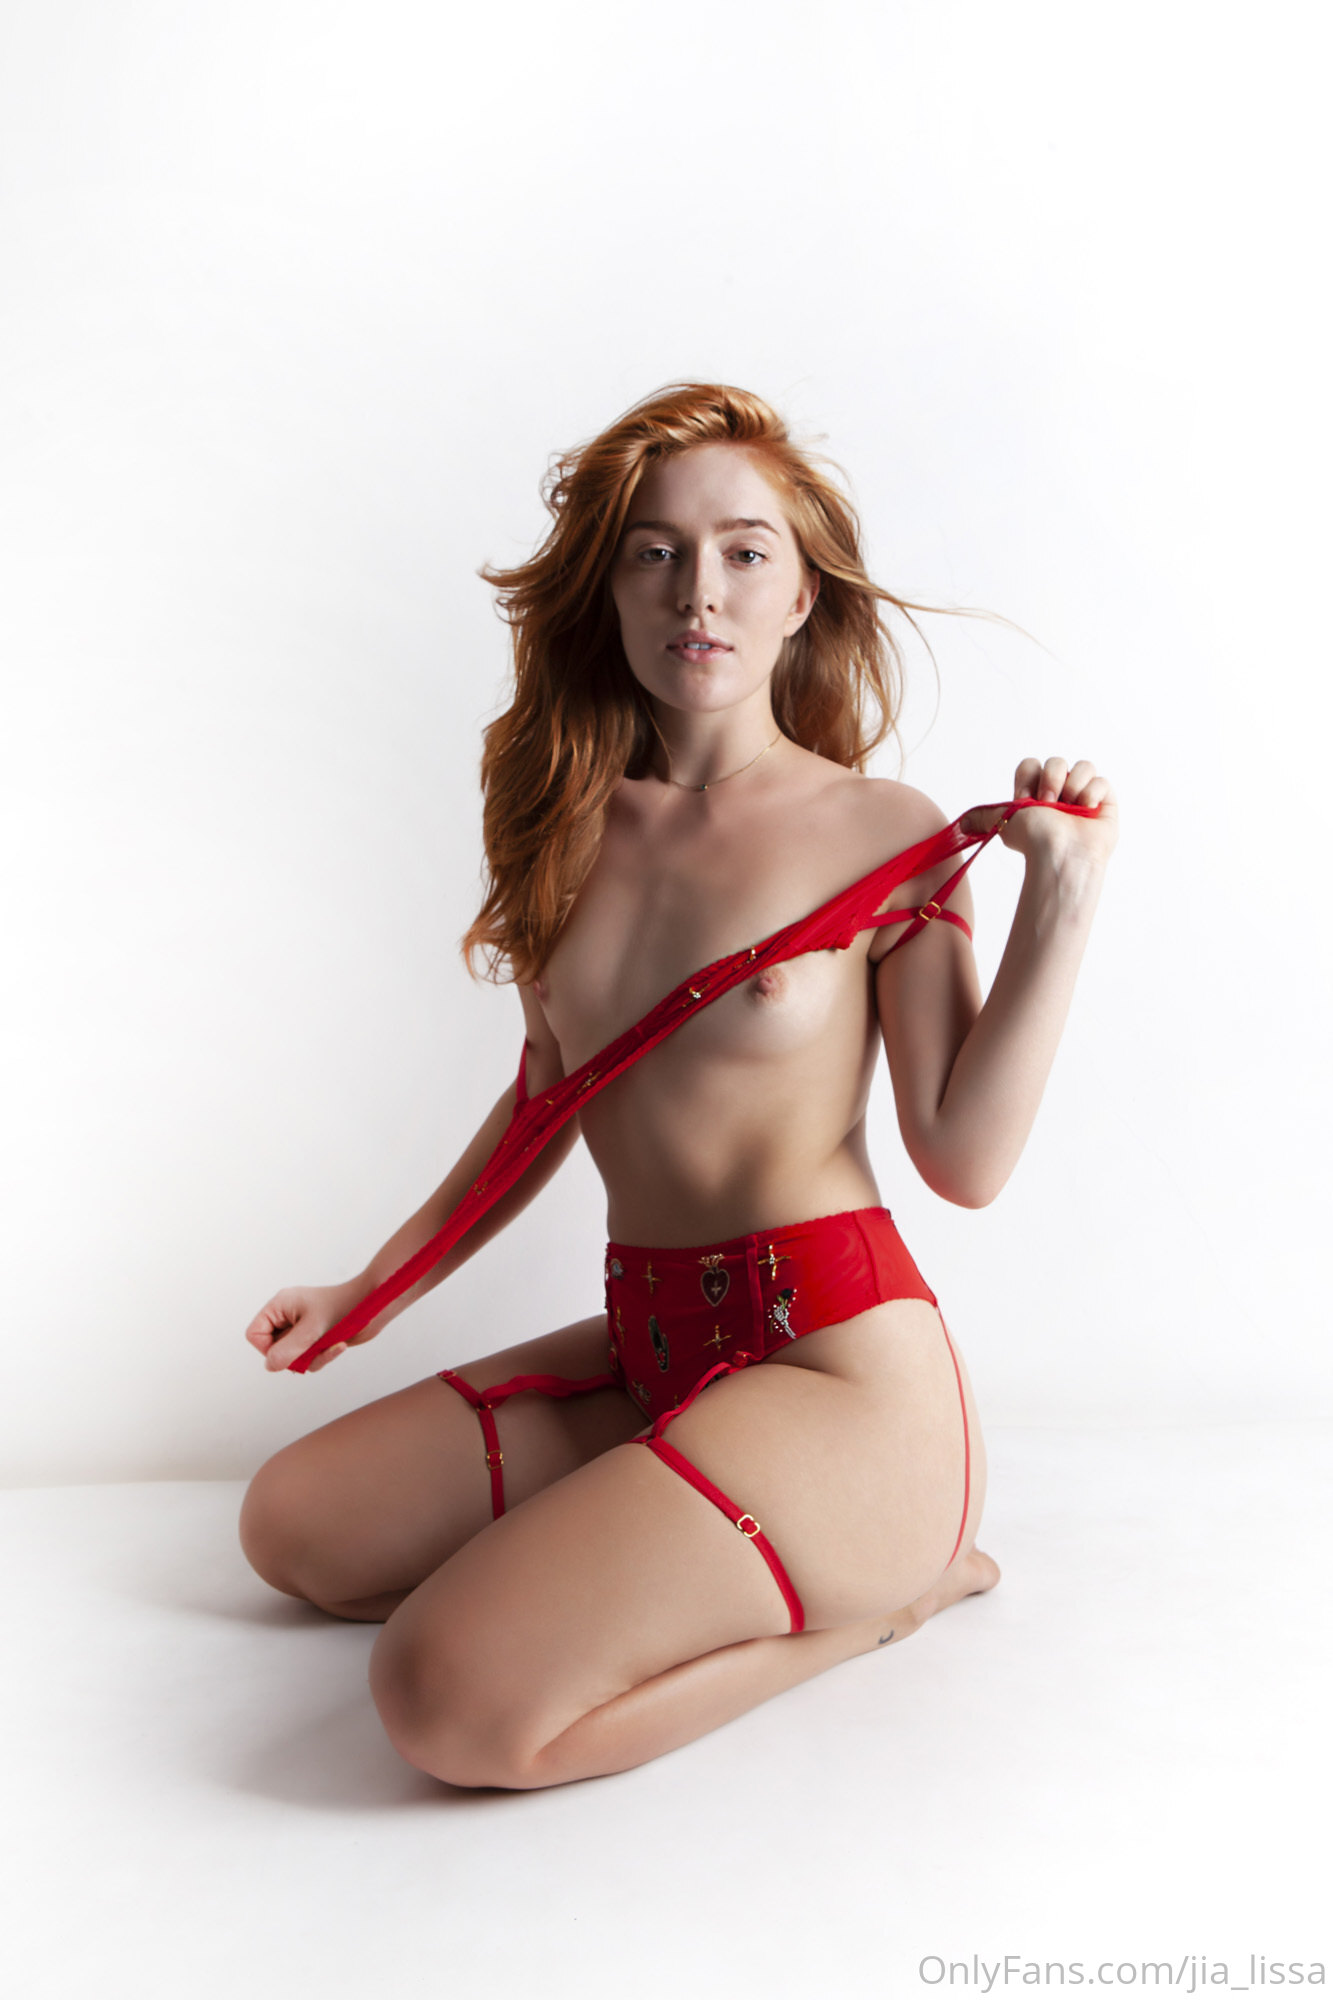 Jia Lissa Porn OnlyFans Leaked Nudes 58